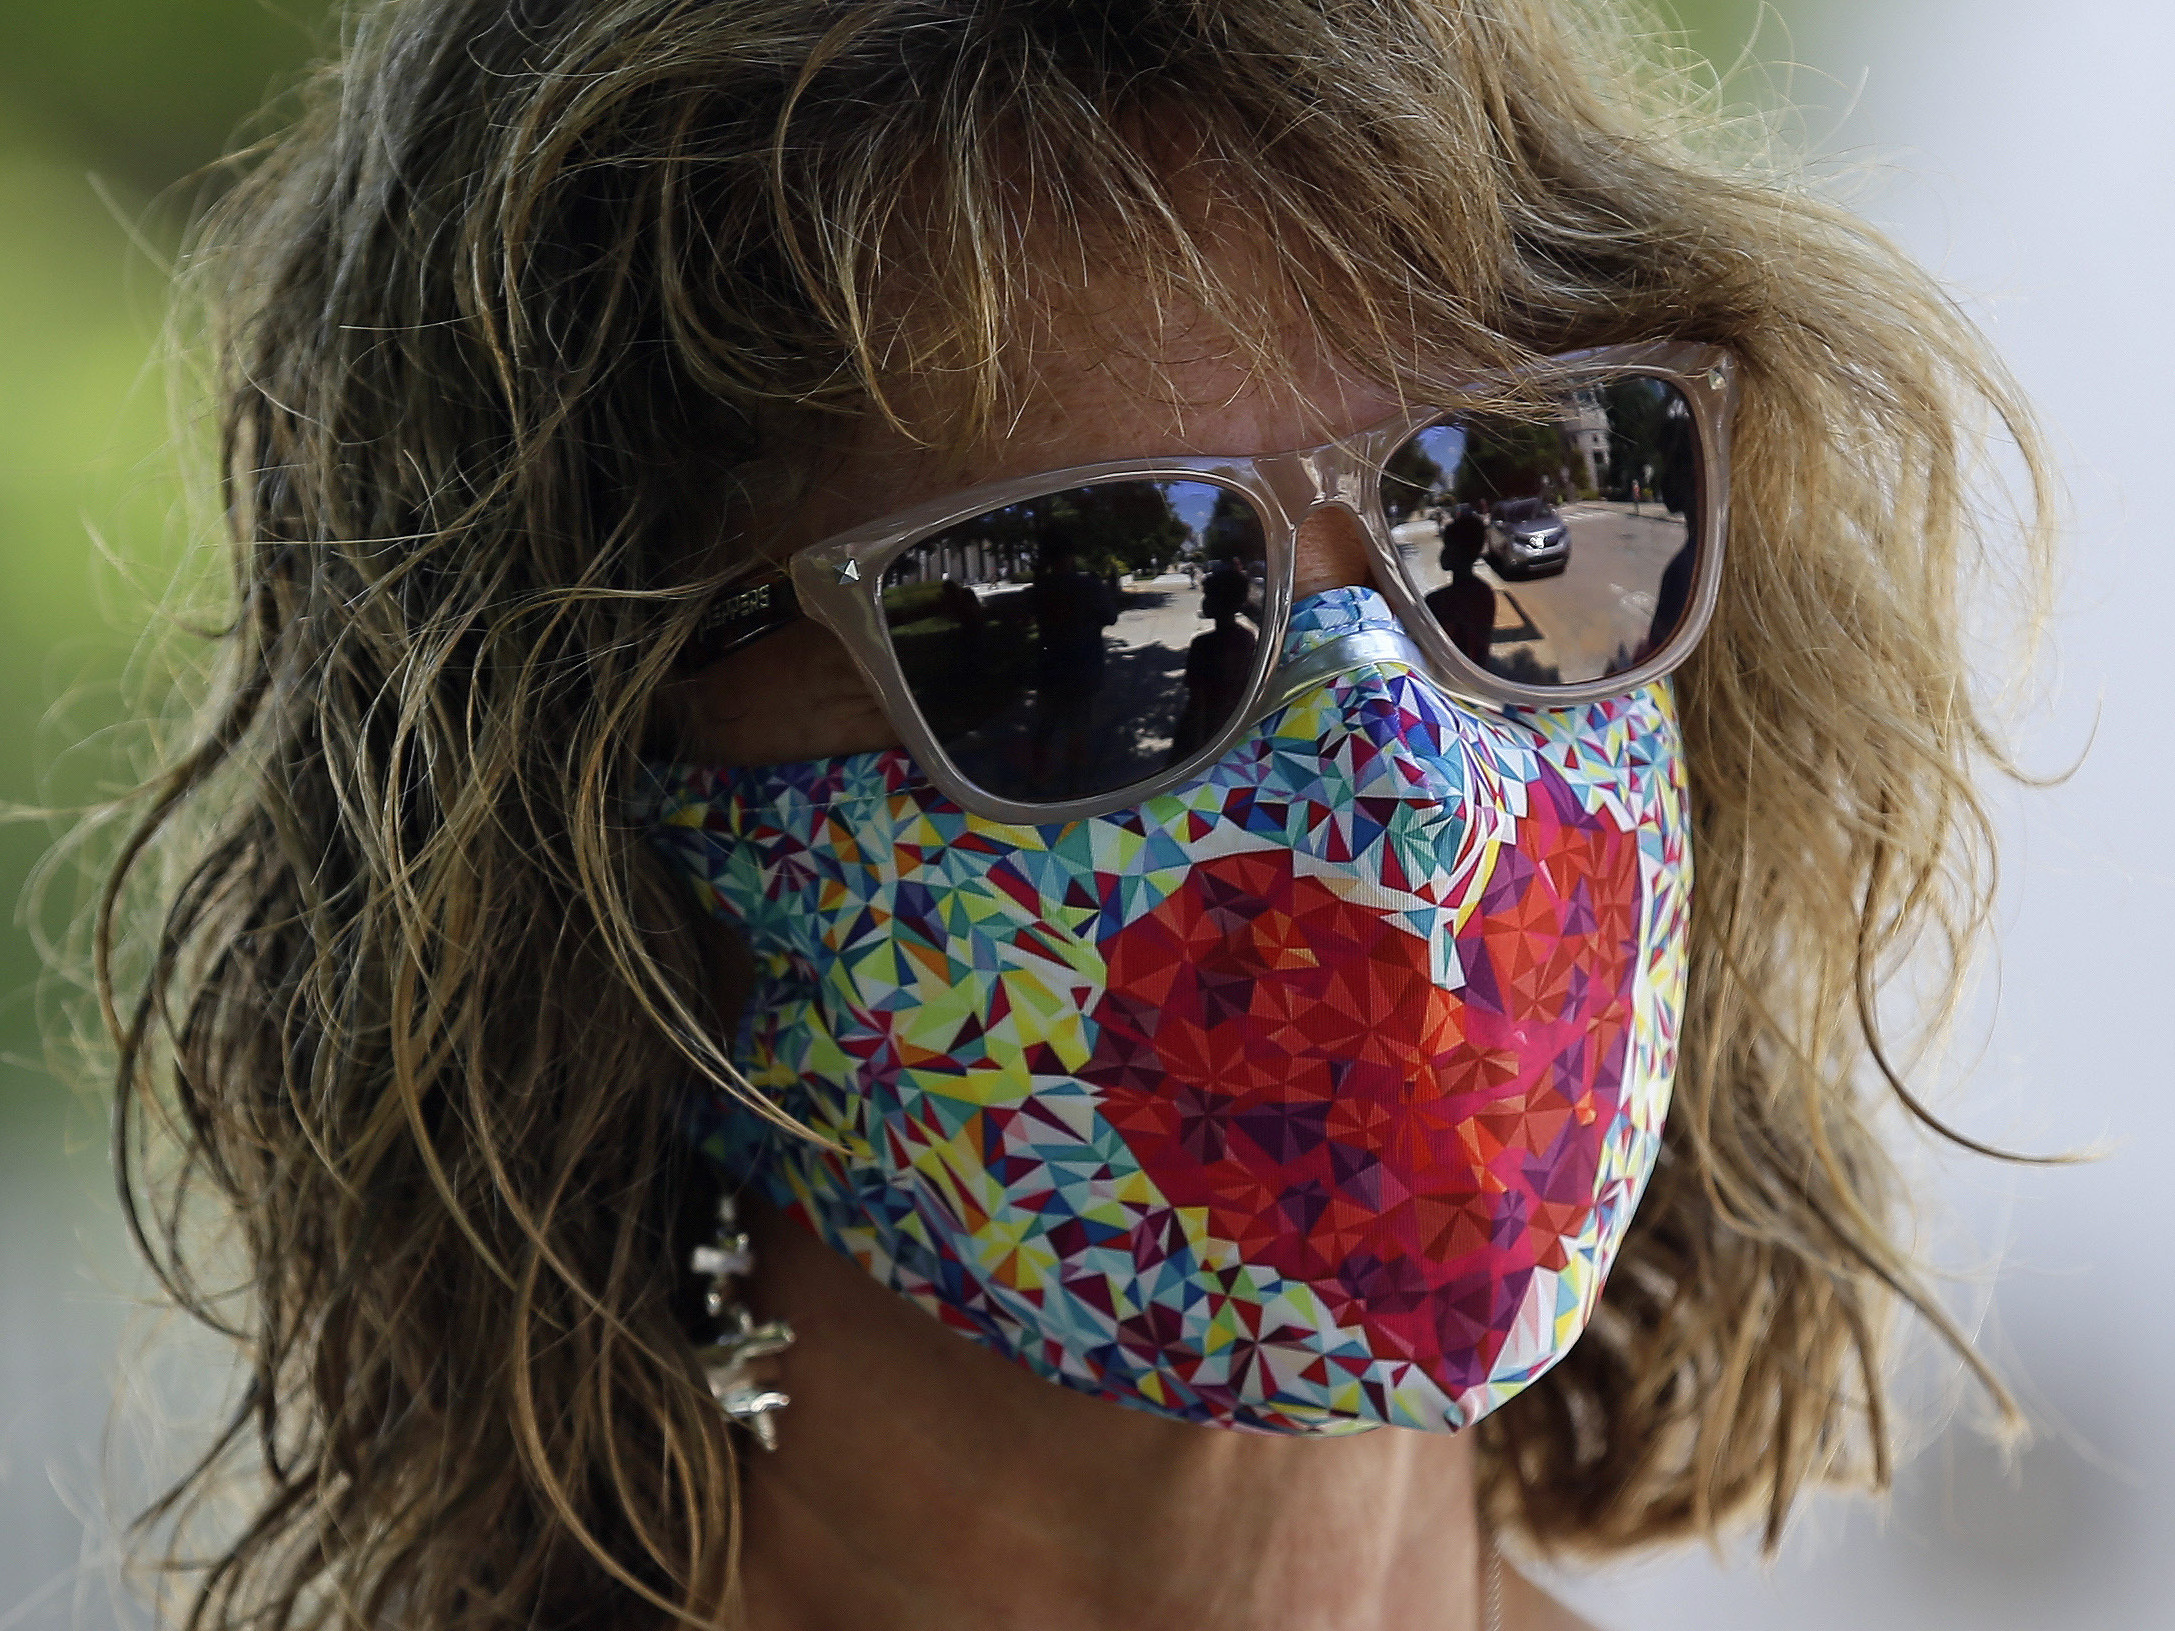 The Department of Justice has issued an alert about a card circulating online falsely claiming that holders are legally exempt from wearing a mask. Public health officials overwhelmingly recommend wearing a mask when going out in public.